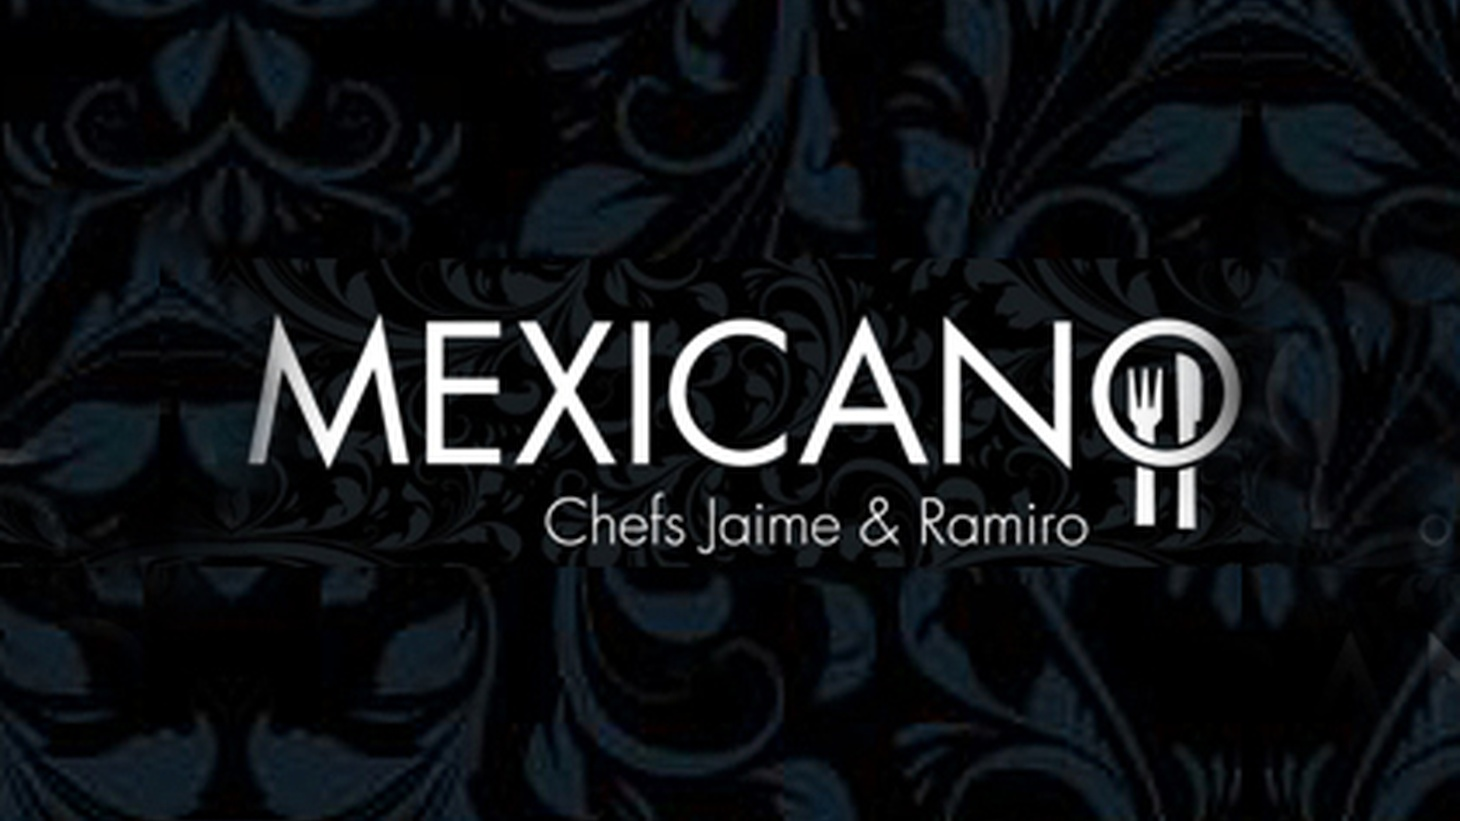 Jonathan Gold visits Mexicano, the second restaurant by Jaime Martín del Campo and Ramiro Arvizu, the chef/owners of the popular La Casita Mexicana in Bell.